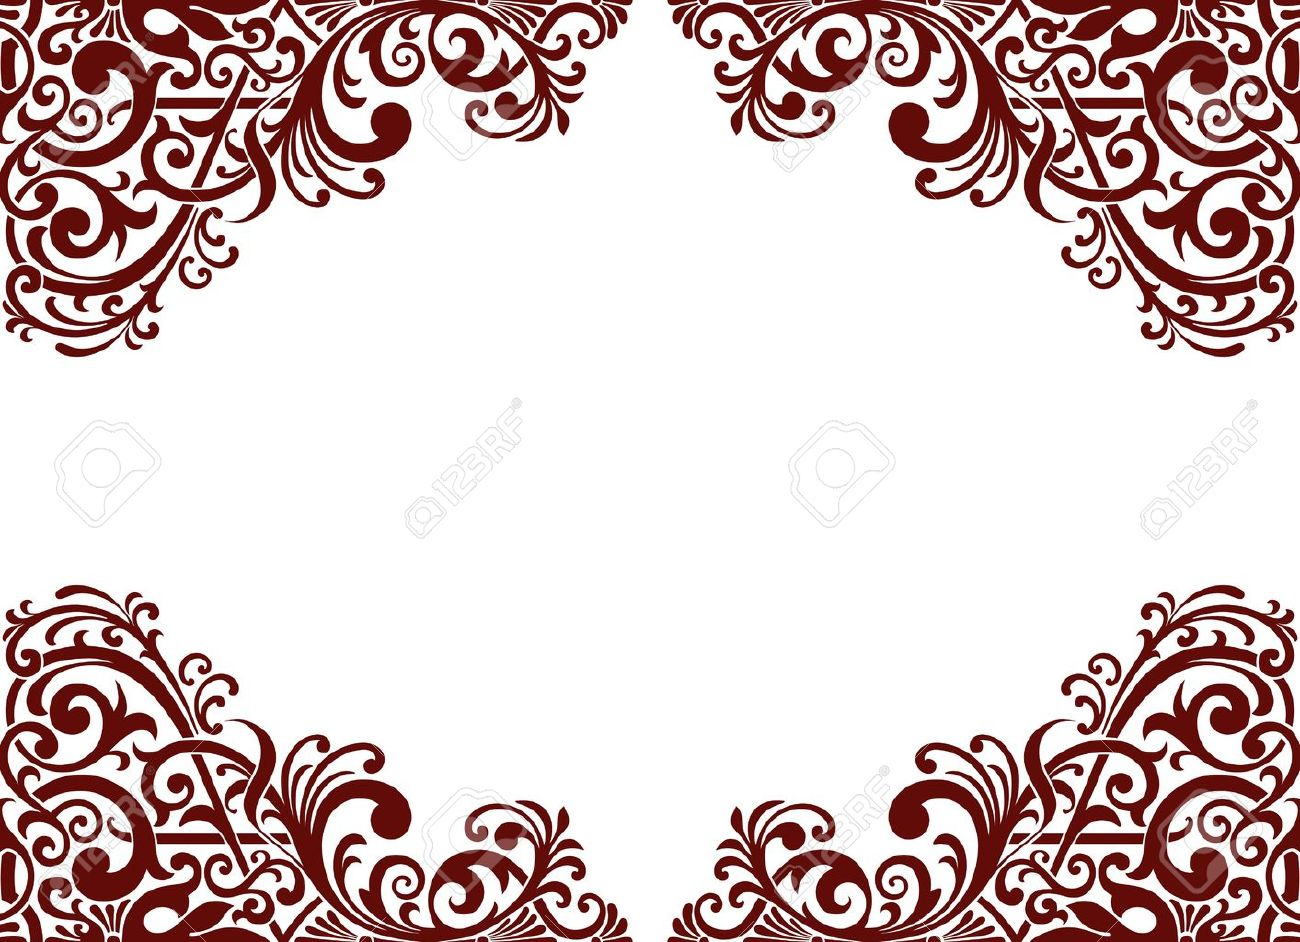 Vintage background ornate baroque pattern vector illustration stock - Vintage Baroque Border Frame Card Background Flower Motif Arabic Retro Pattern Ornate Stock Vector 14507287